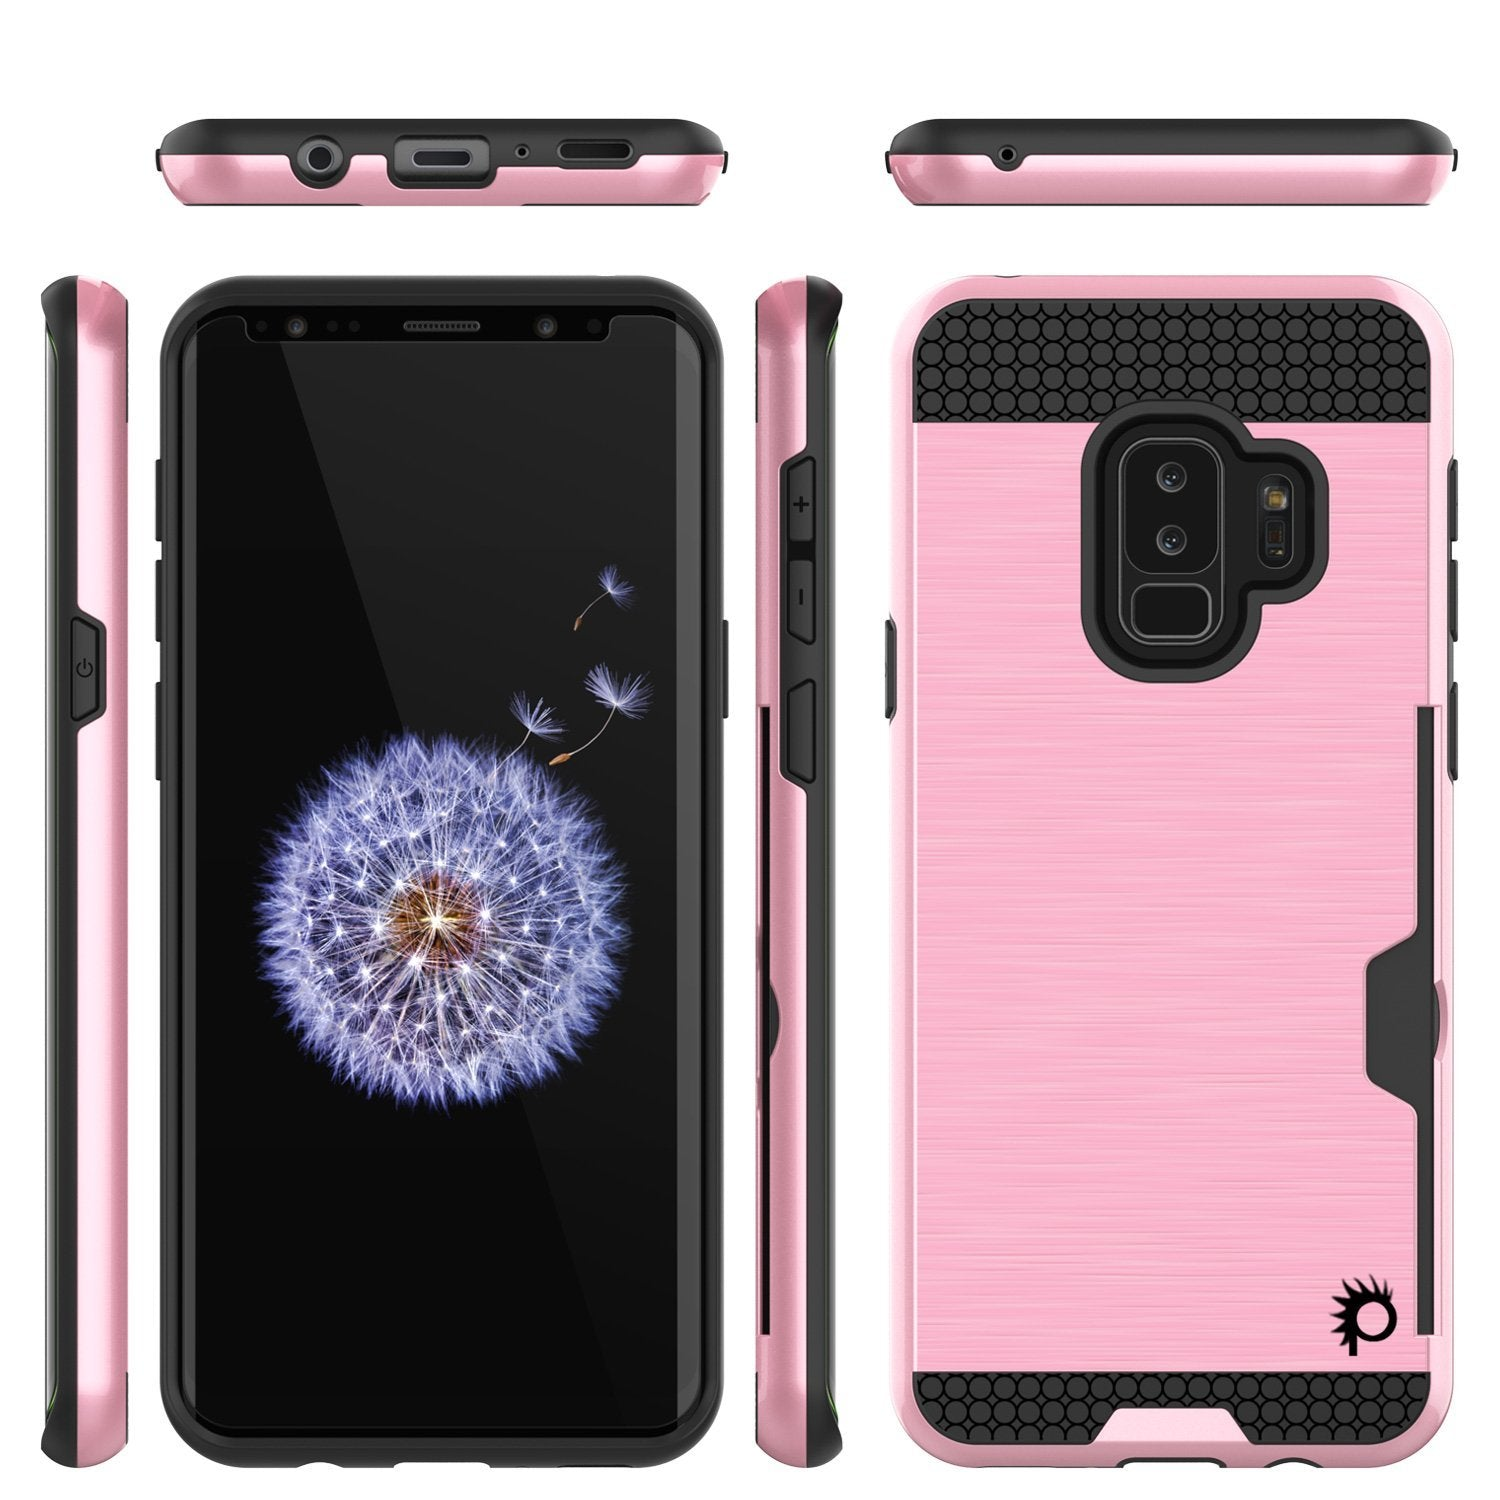 Galaxy S9 Plus Case, PUNKcase [SLOT Series] [Slim Fit] Dual-Layer Armor Cover w/Integrated Anti-Shock System [Pink]